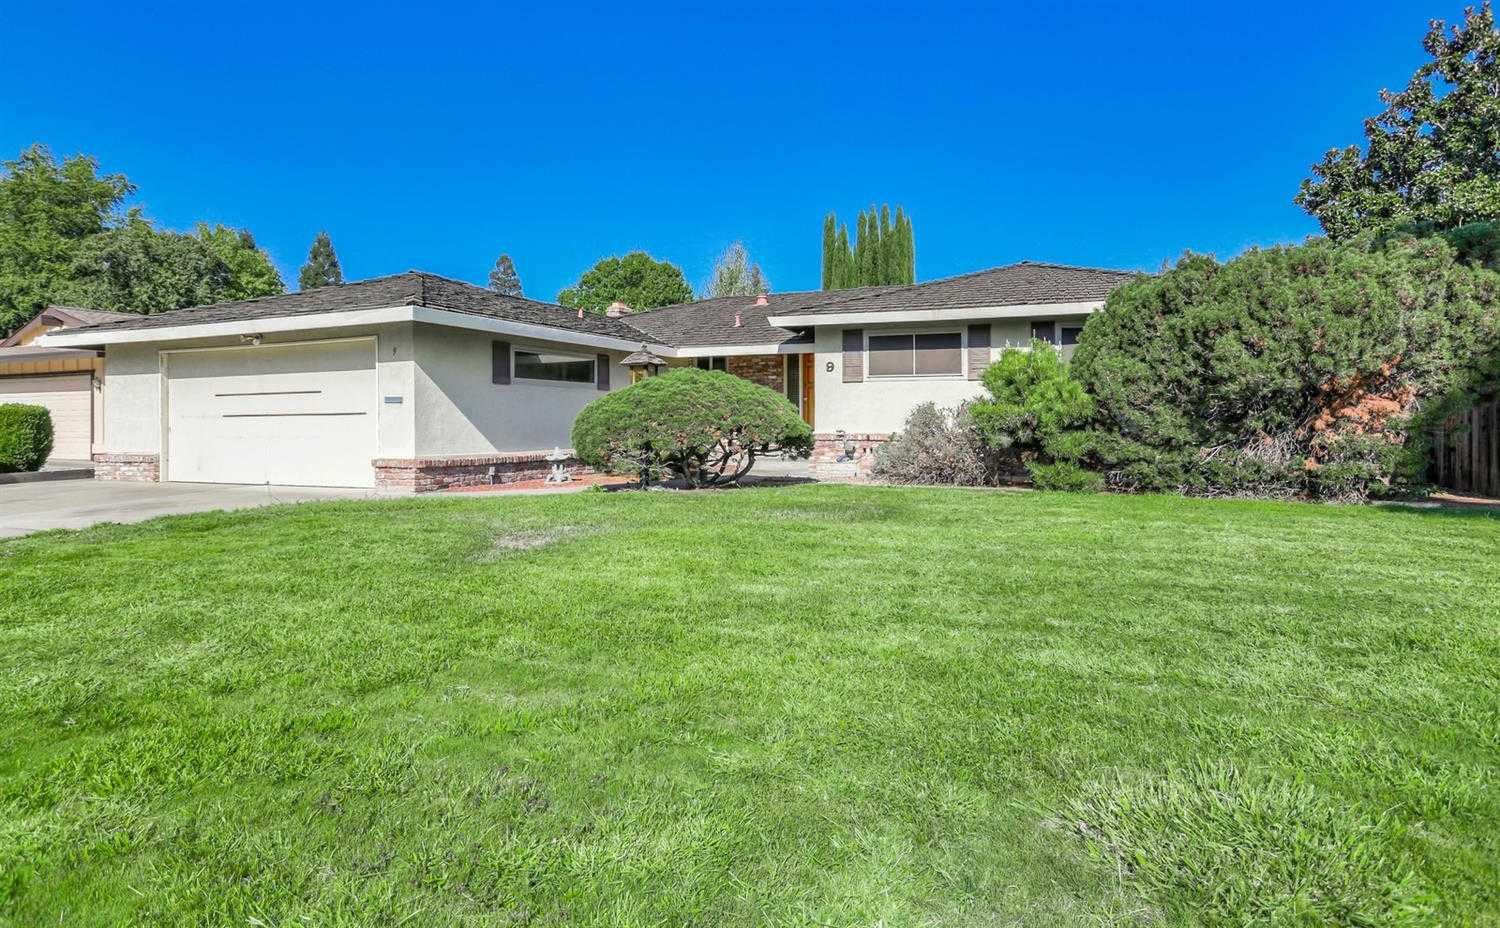 9 Pebble Ct Sacramento, CA 95831